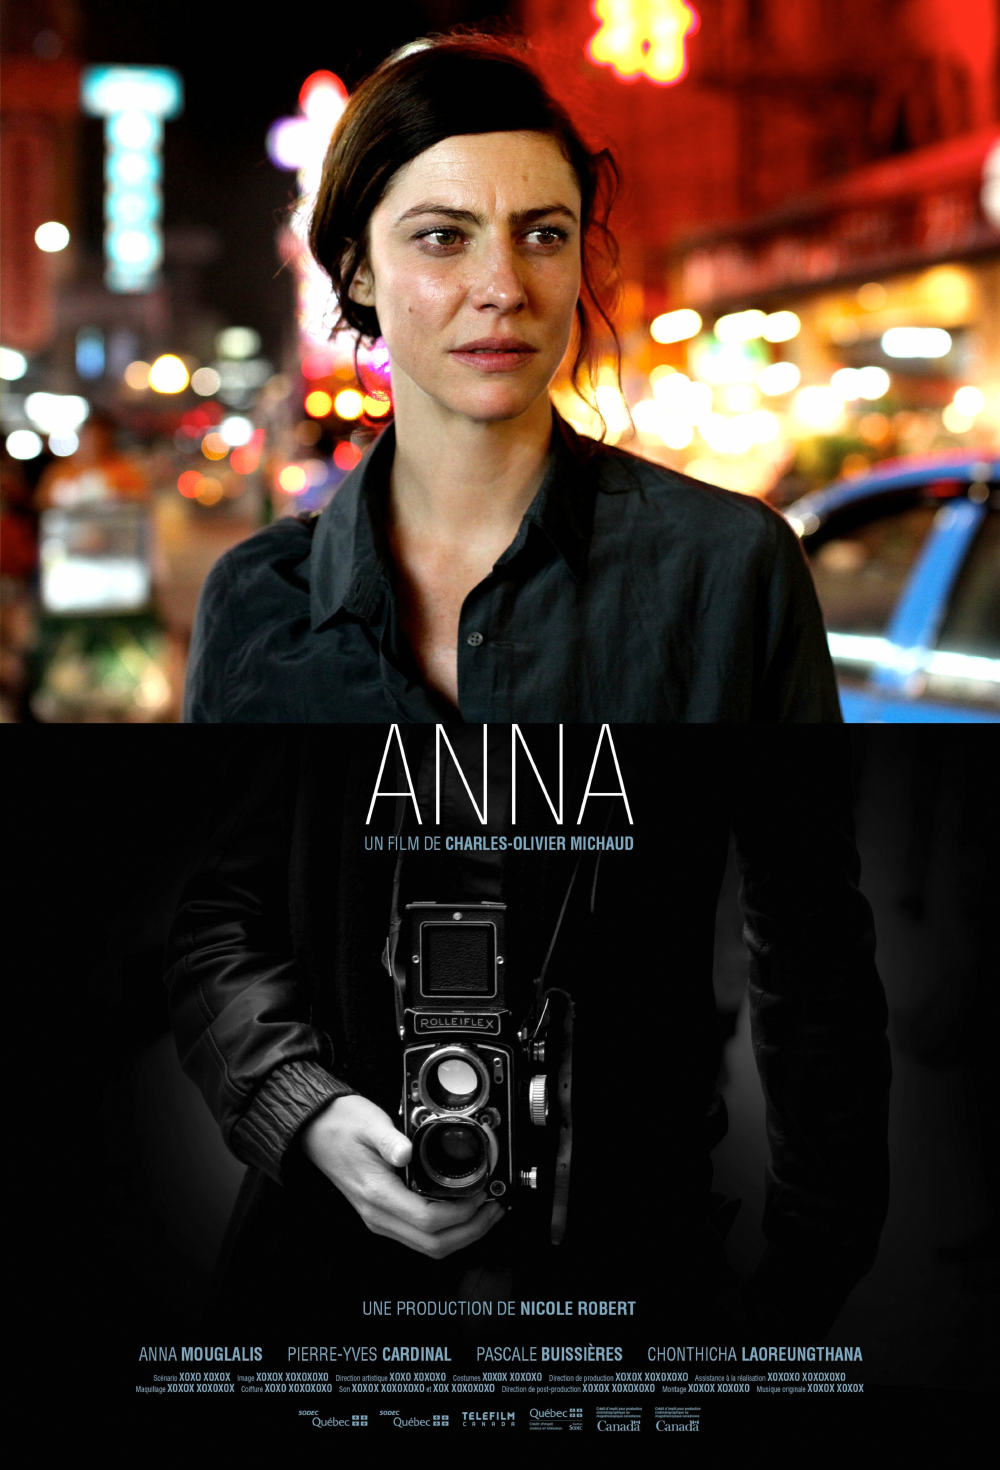 ANNA-Posters-5aout_00010.PNG